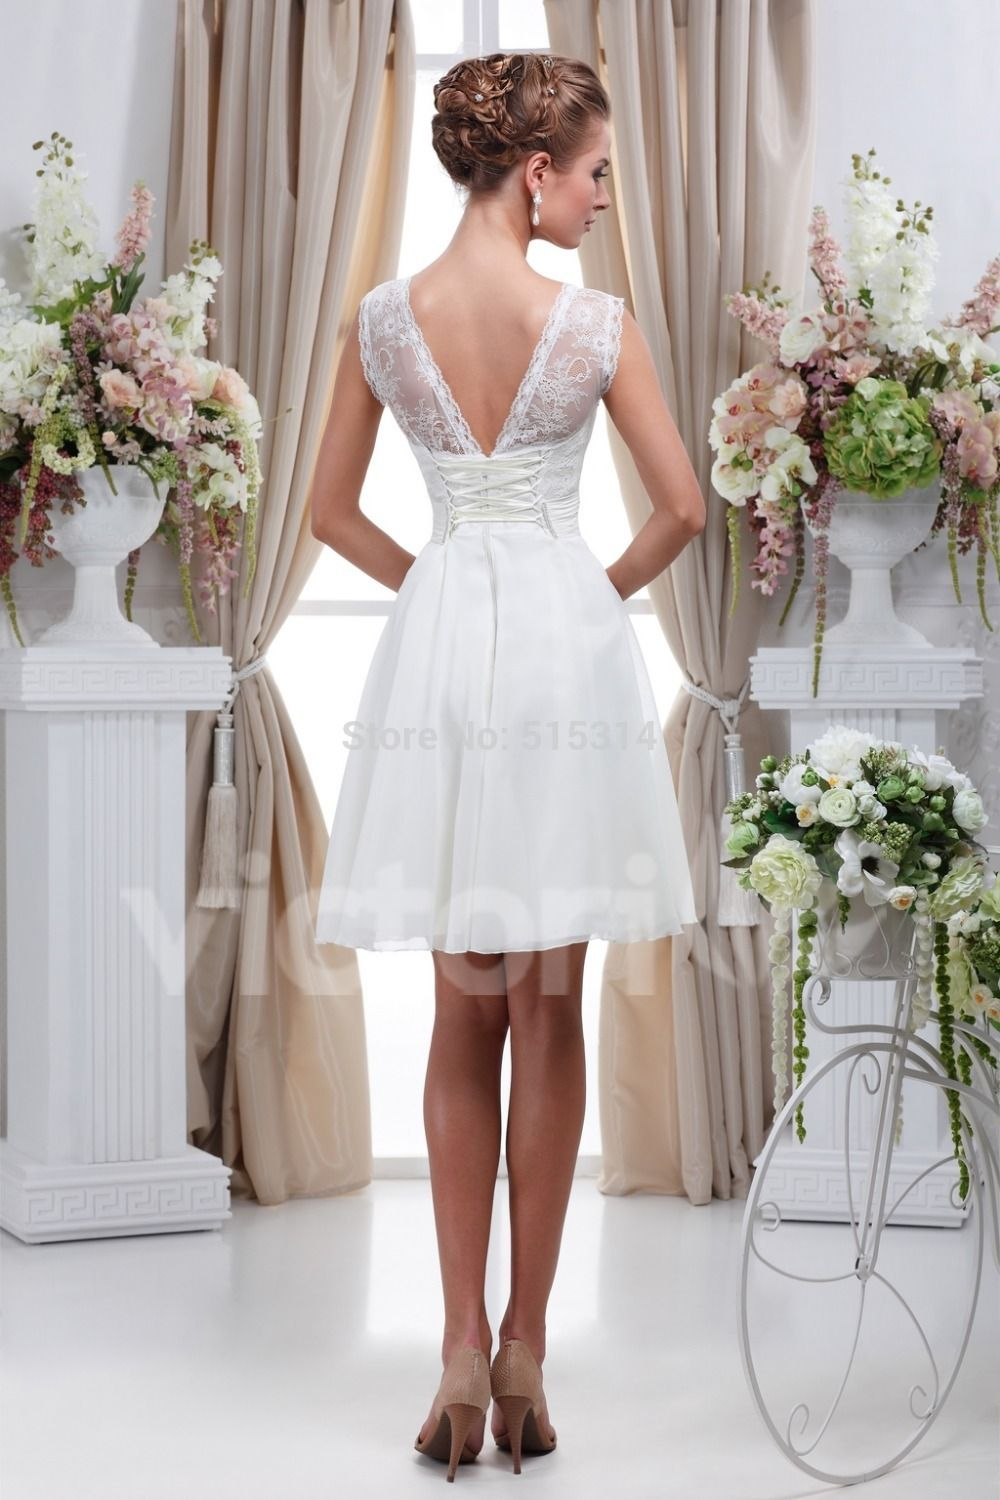 Wedding Dresses Picture More Detailed Picture About Simple White Short Wedding Dress Short Wedding Dress Short Lace Wedding Dress Short White Dress Wedding [ 1500 x 1000 Pixel ]